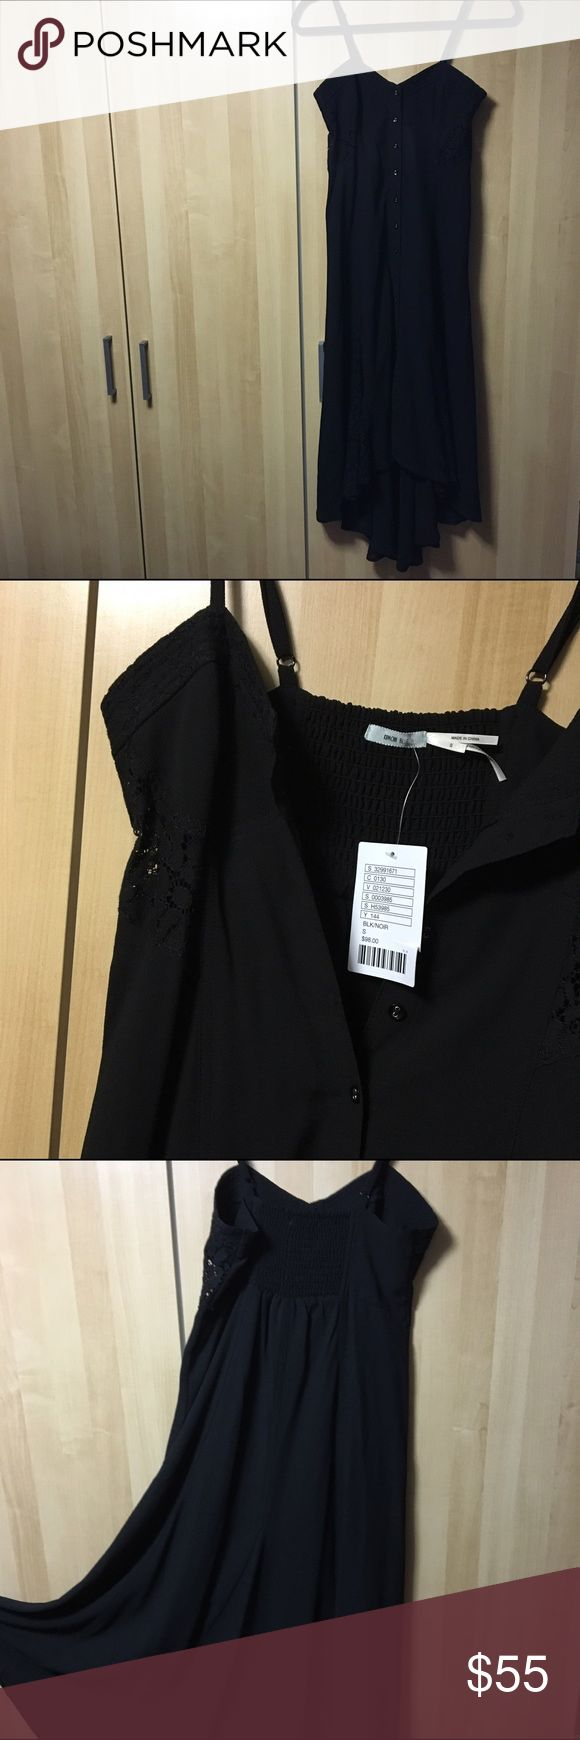 Vintage LBD by Kimchi Blue Dress by Kimchi Blue from urban outfitters. Little black dress with lace details on the sides of waist and bottom. Slip midi dress style with all the way down buttons. Stretch material with adjustable straps. A little high-low. One layered. Can go either a classic style or rebellion style. Questions welcomed. Photo credit for stock photos goes to Poshmark. Urban Outfitters Dresses Asymmetrical